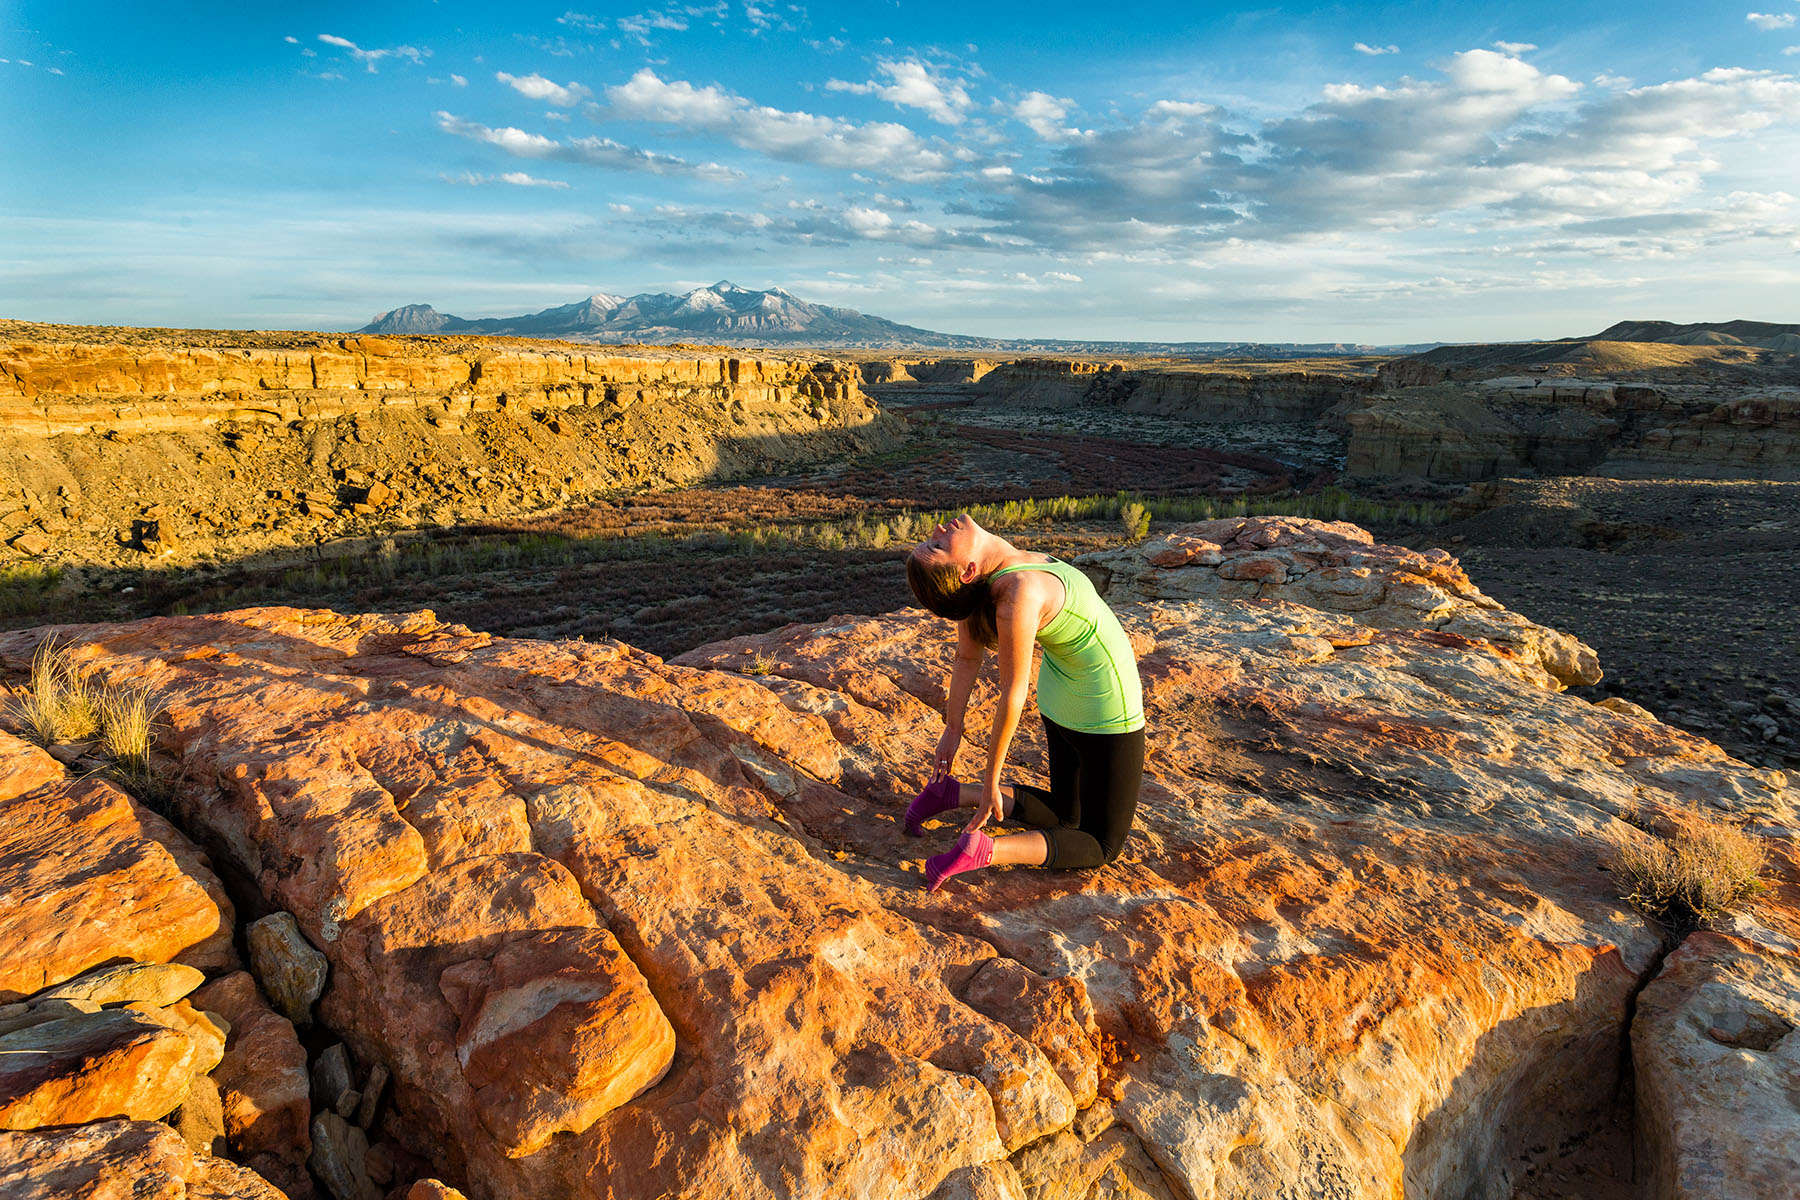 Lifestyle: Melissa Hagedorn doing yoga below the Henry Mountains at sunset, Cainville, Utah